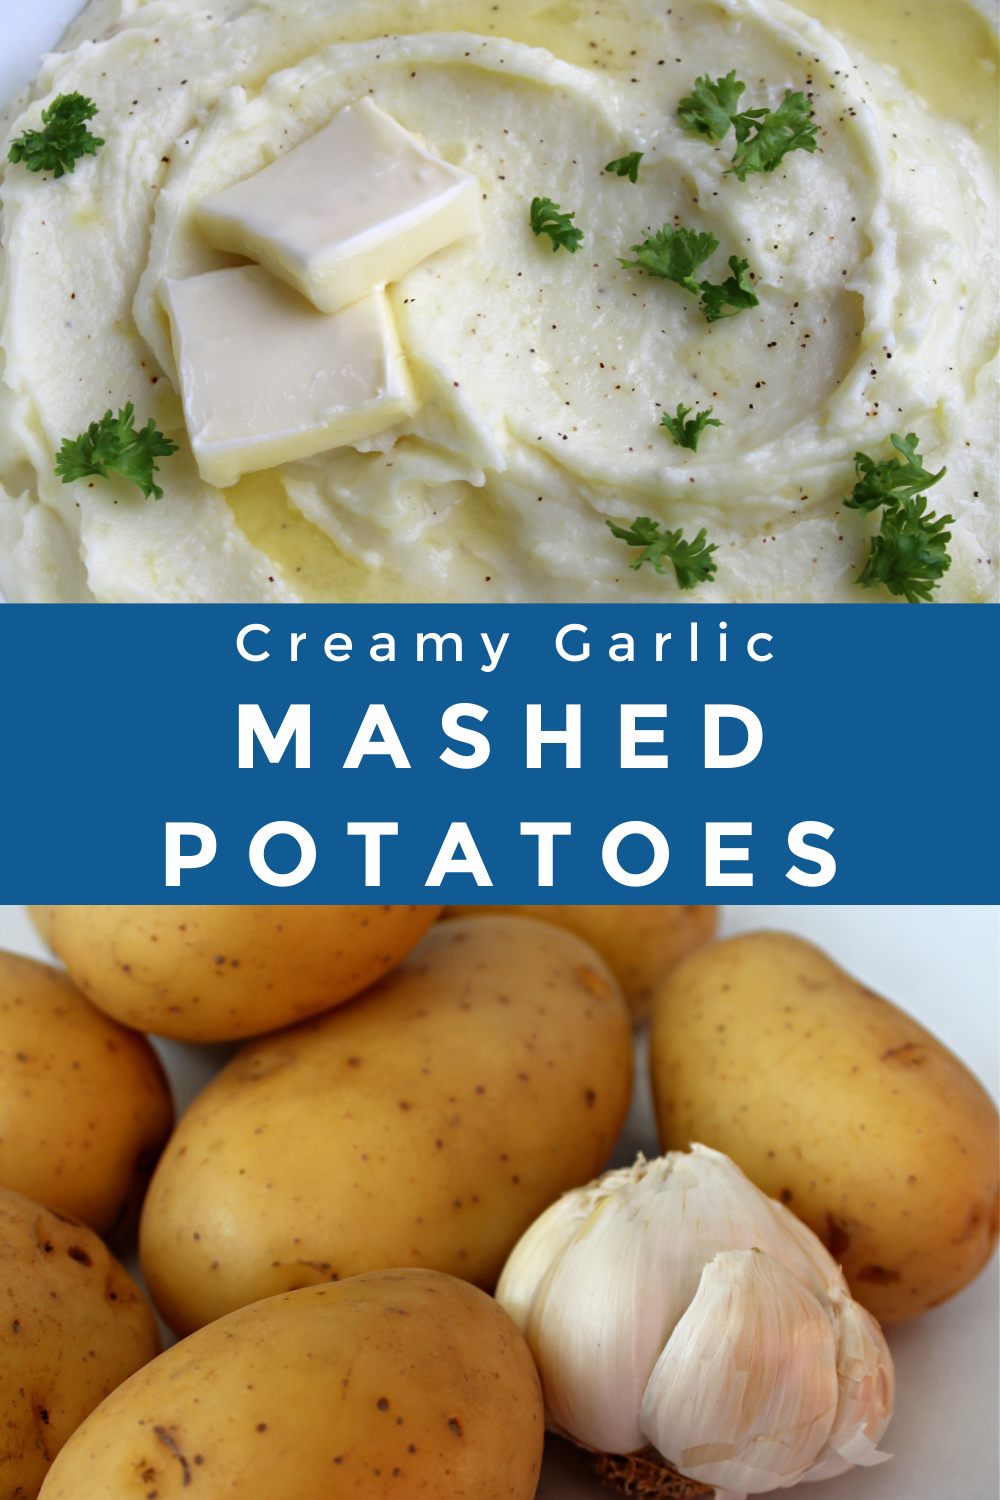 Creamy Garlic Mashed Potatoes collage